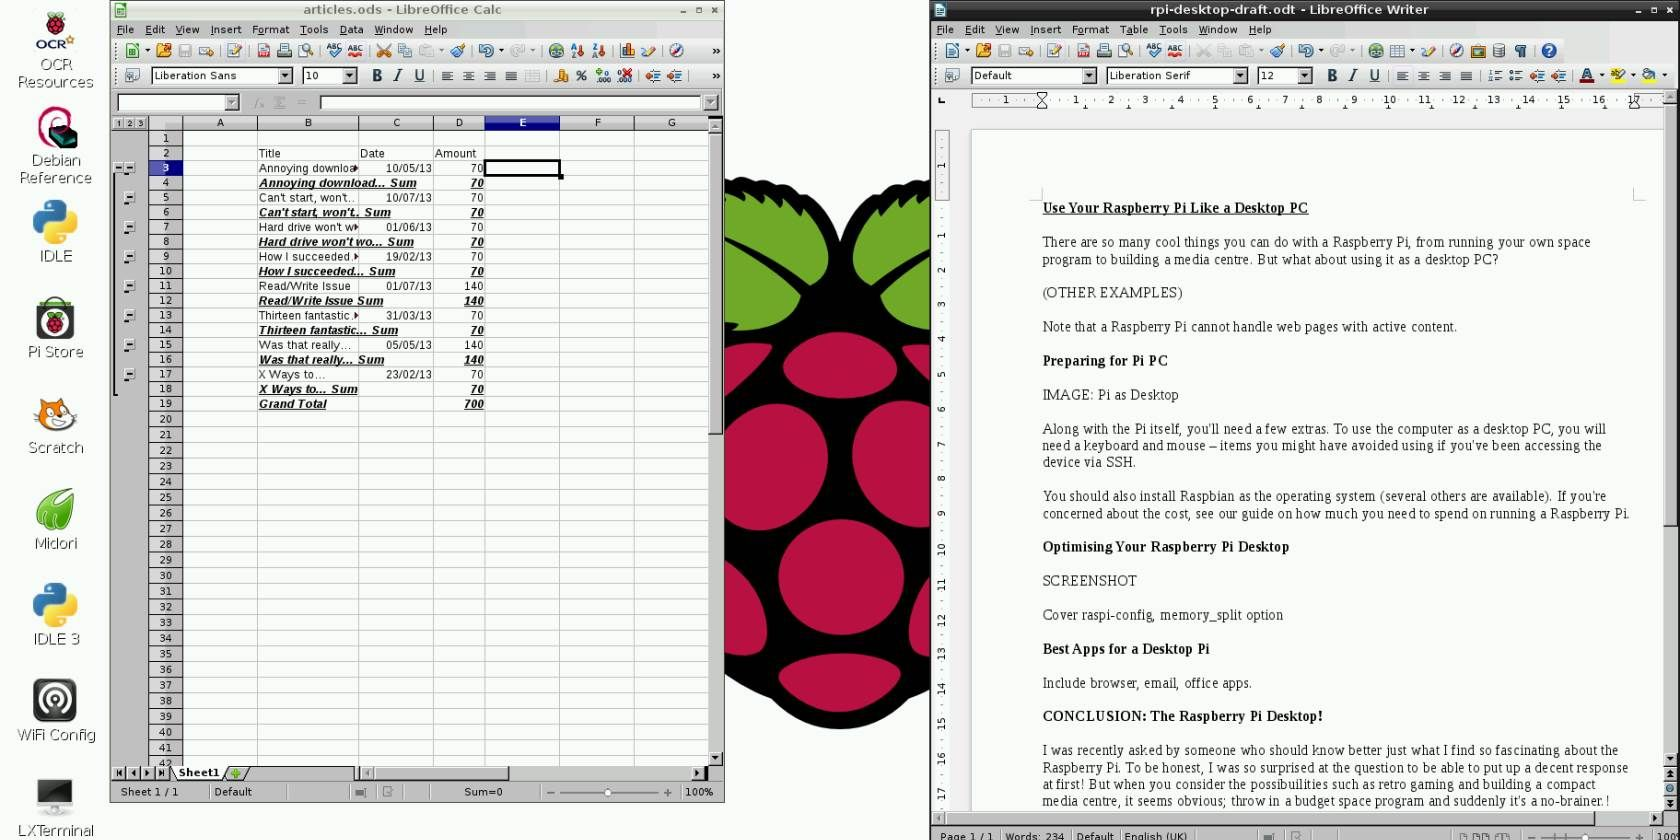 Use Your Raspberry Pi Like a Desktop PC